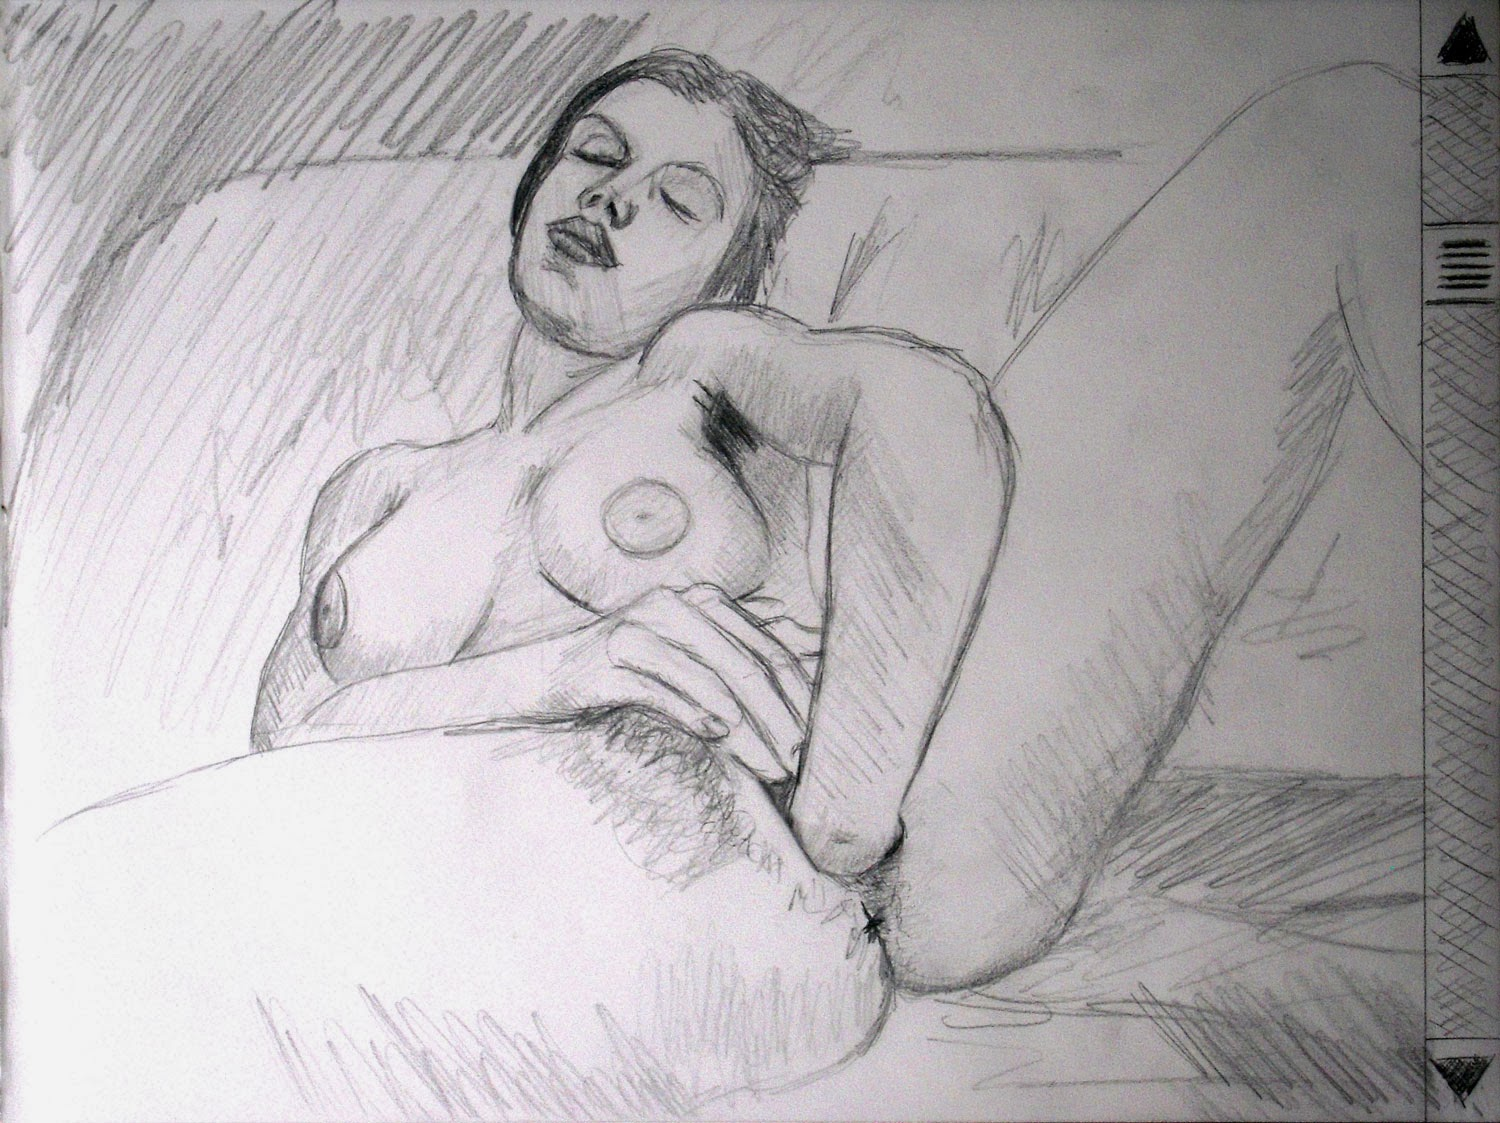 massage erotique 17 dessin porno